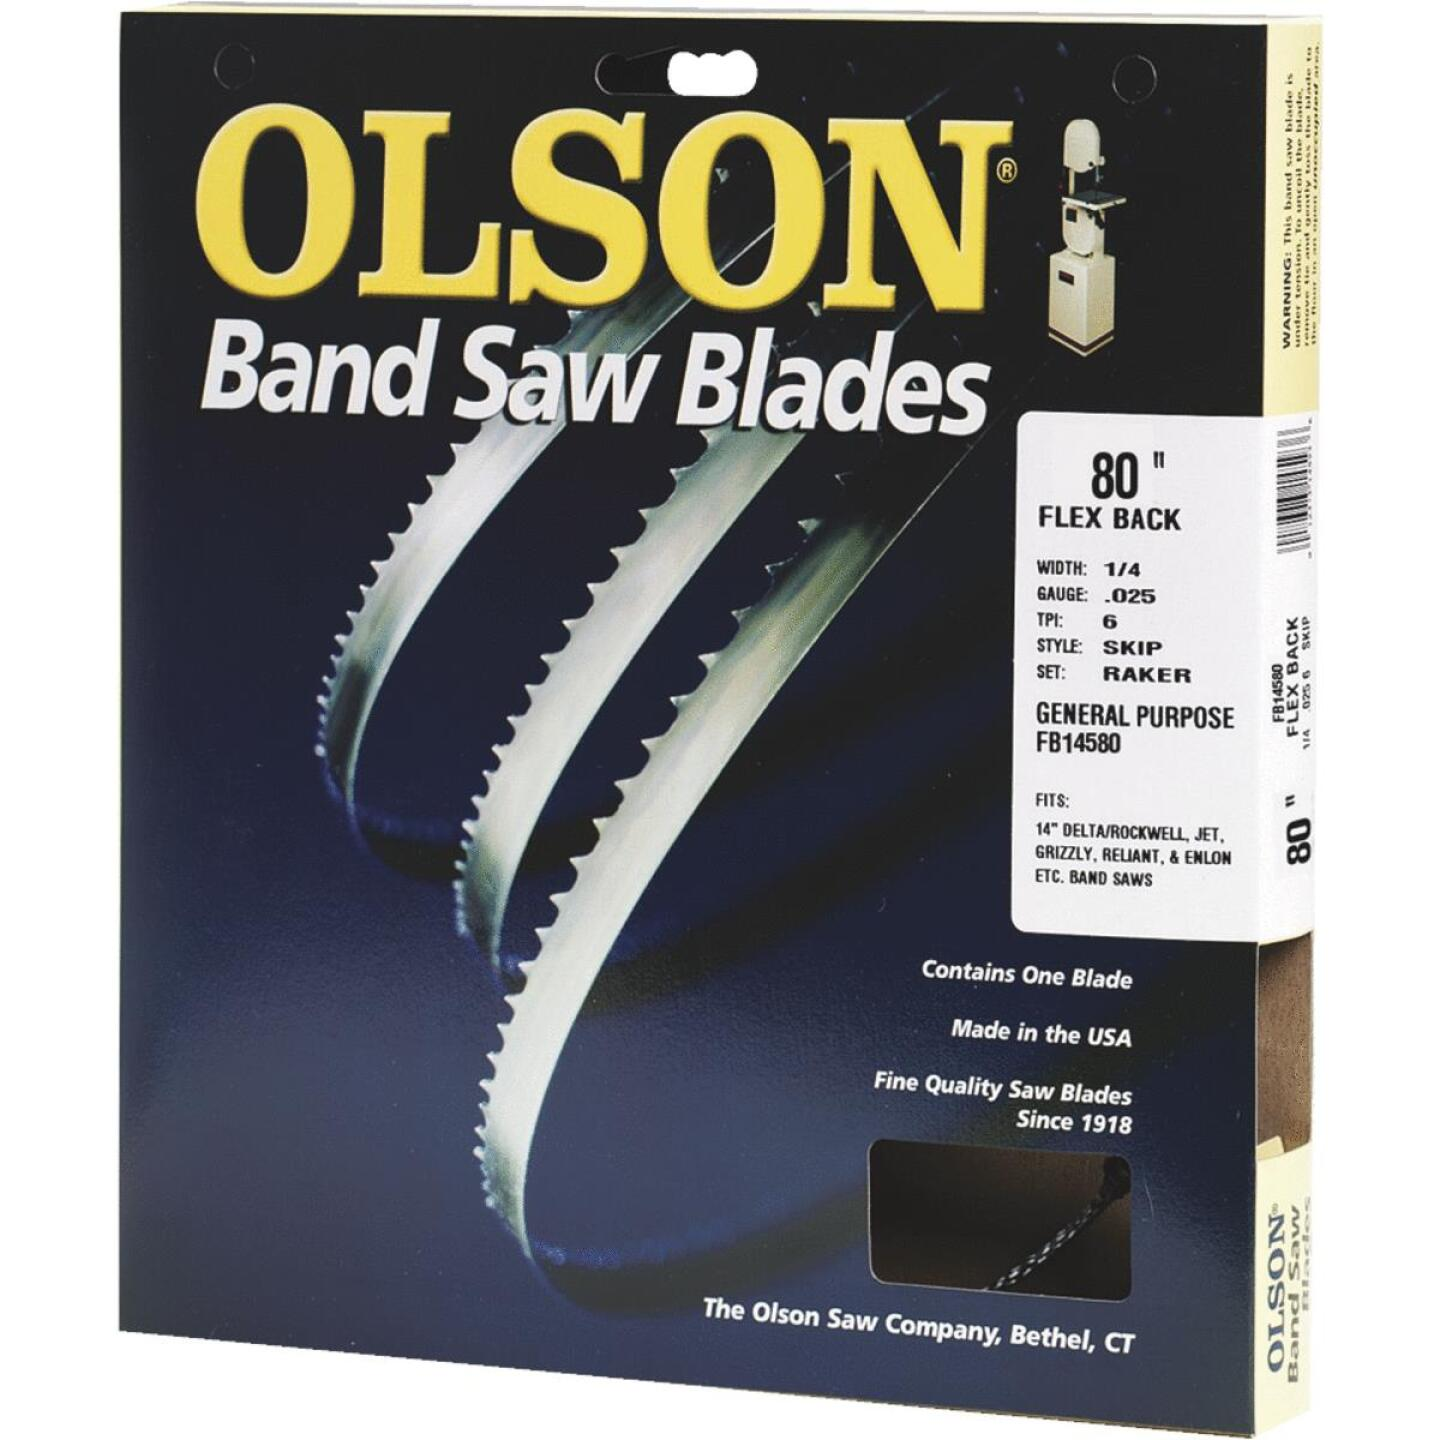 Olson 80 In. x 1/4 In. 6 TPI Skip Flex Back Band Saw Blade Image 1